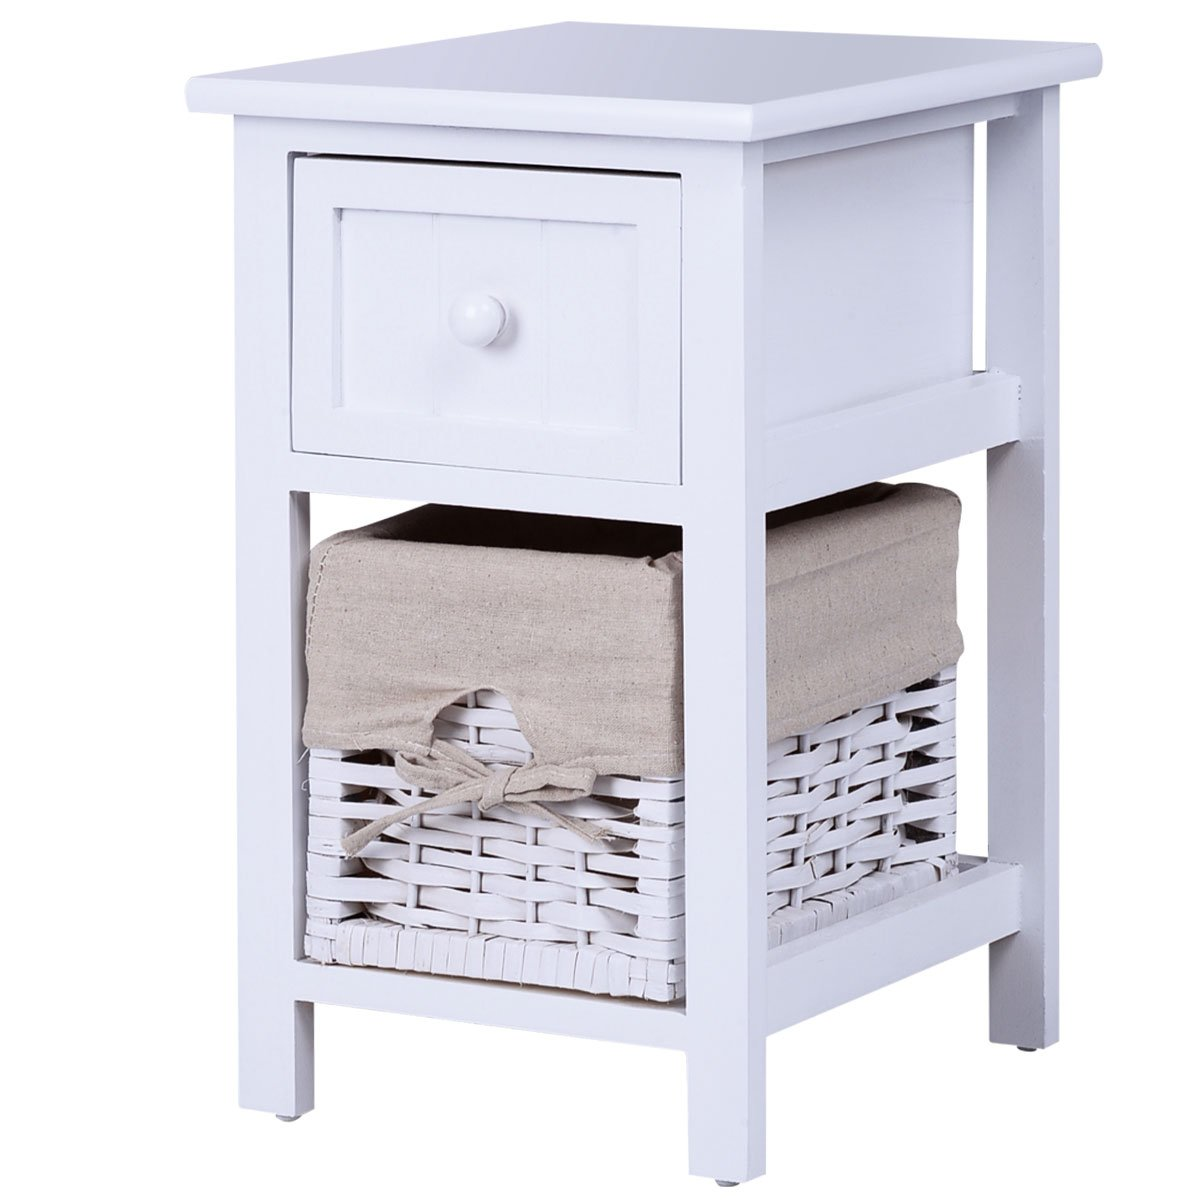 Giantex 2 Tier Nightstand Bedroom End Table Bedside Organizer Wood with Drawer & Basket, White